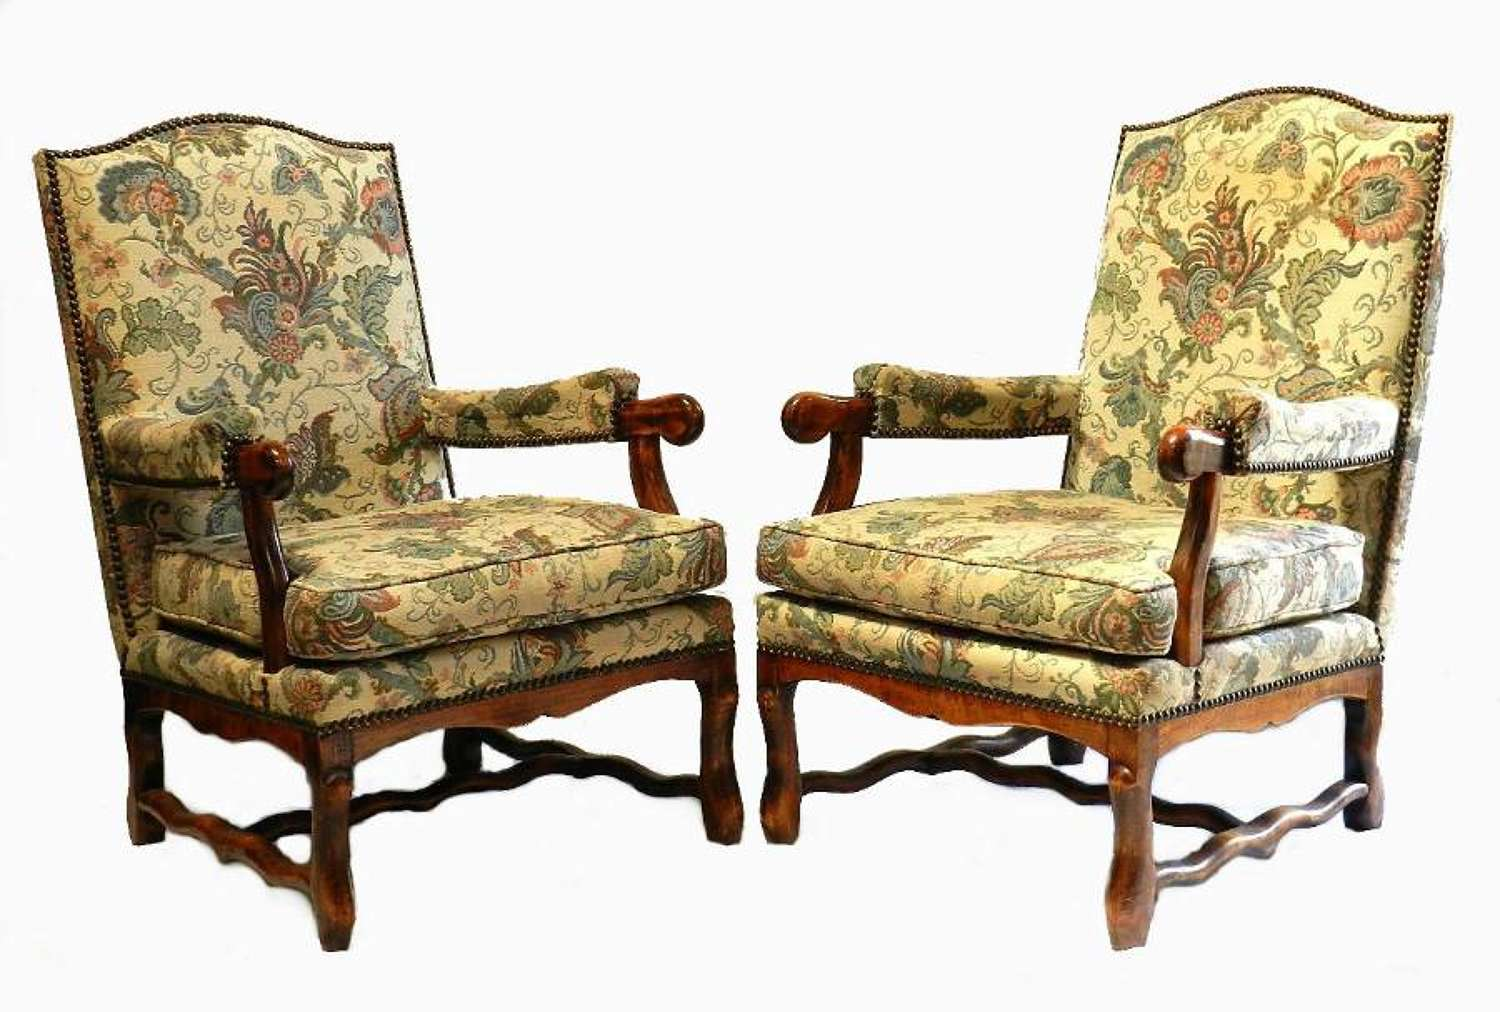 Pair of Broad Seat French Os de Mouton Armchairs can be recovered